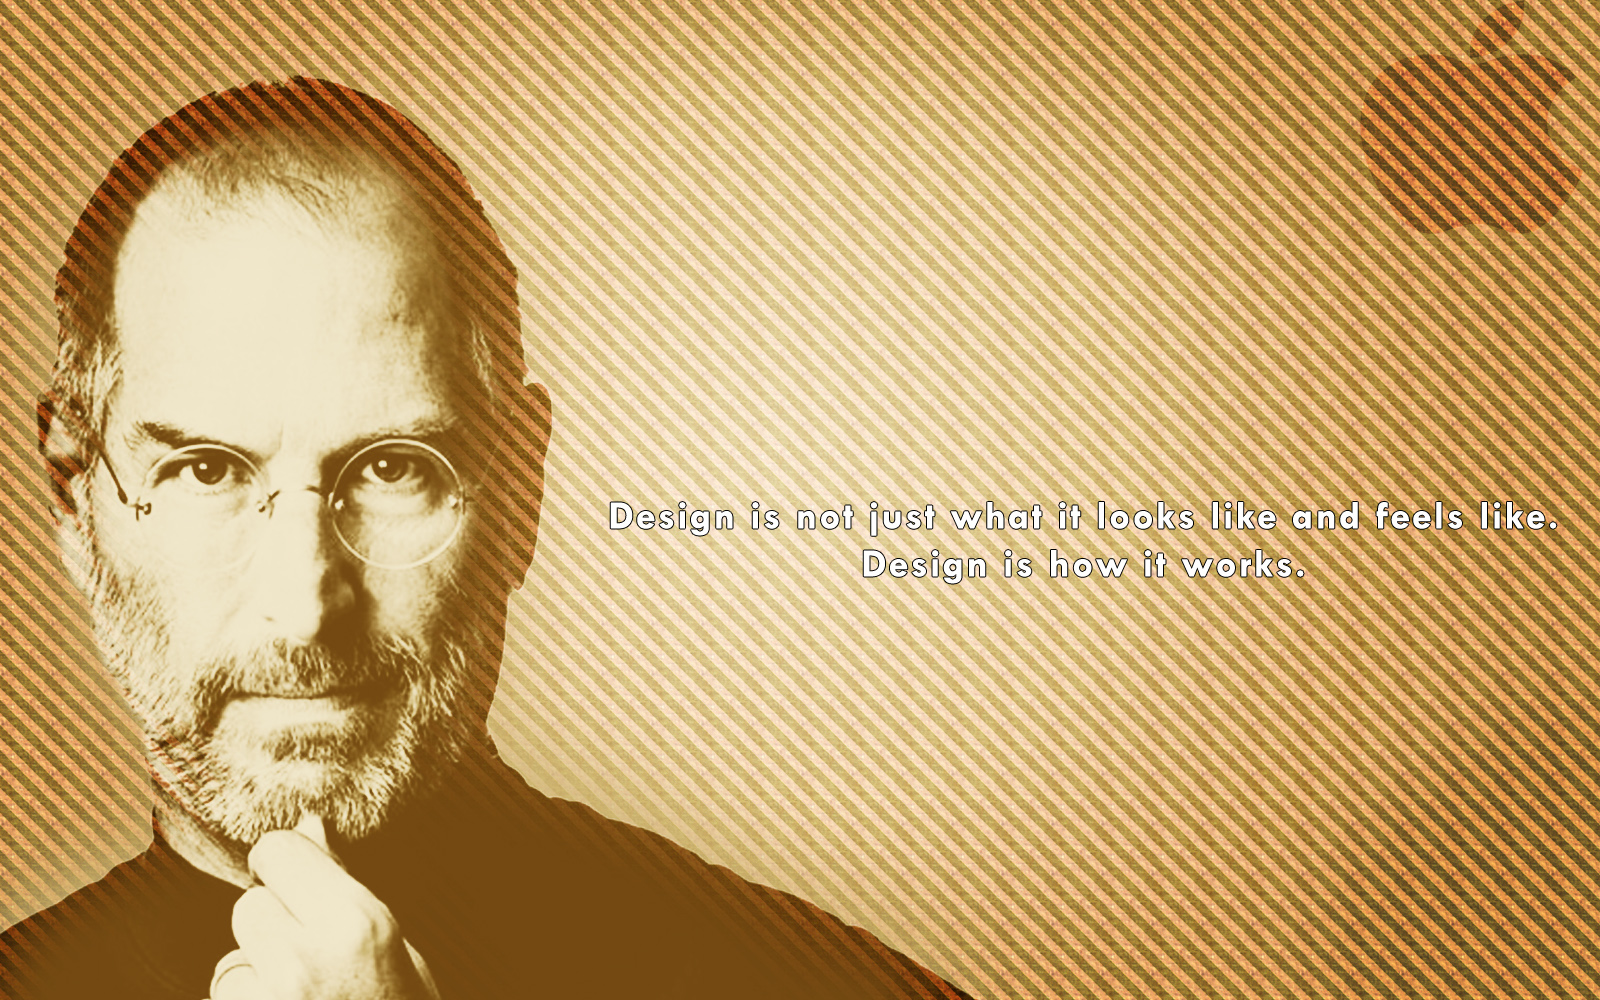 http://3.bp.blogspot.com/-3lVdfpfMn5Y/To2Lcu3Ie7I/AAAAAAAADXc/NdmQmPDadVc/s1600/Steve_Jobs_Quote_Design_HD_Wallpaper_Vvallpaper.Net.jpg